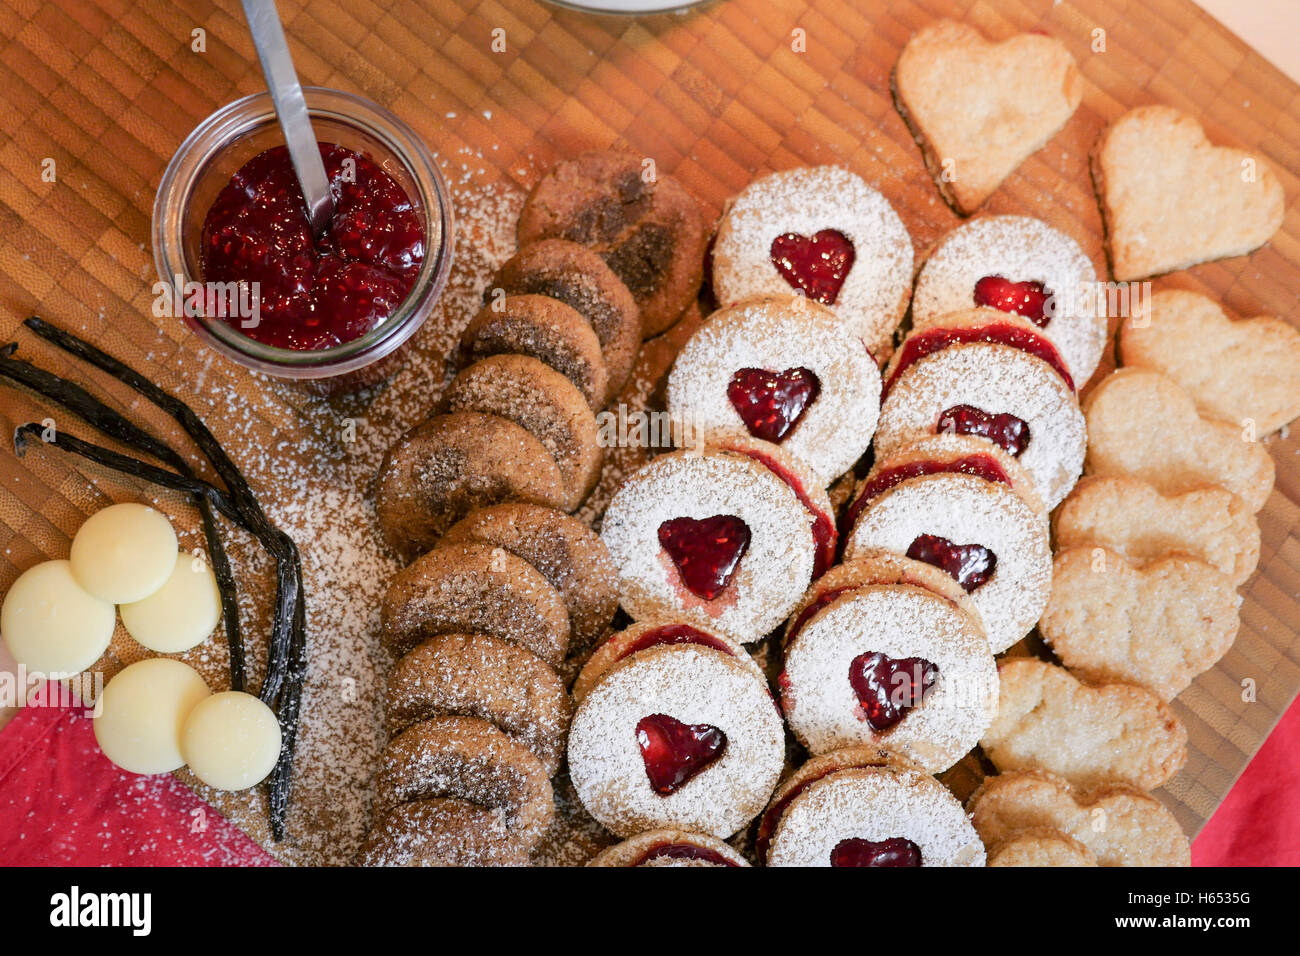 cookies and biscuits presented on a wooden board with ingredients next to it - Stock Image